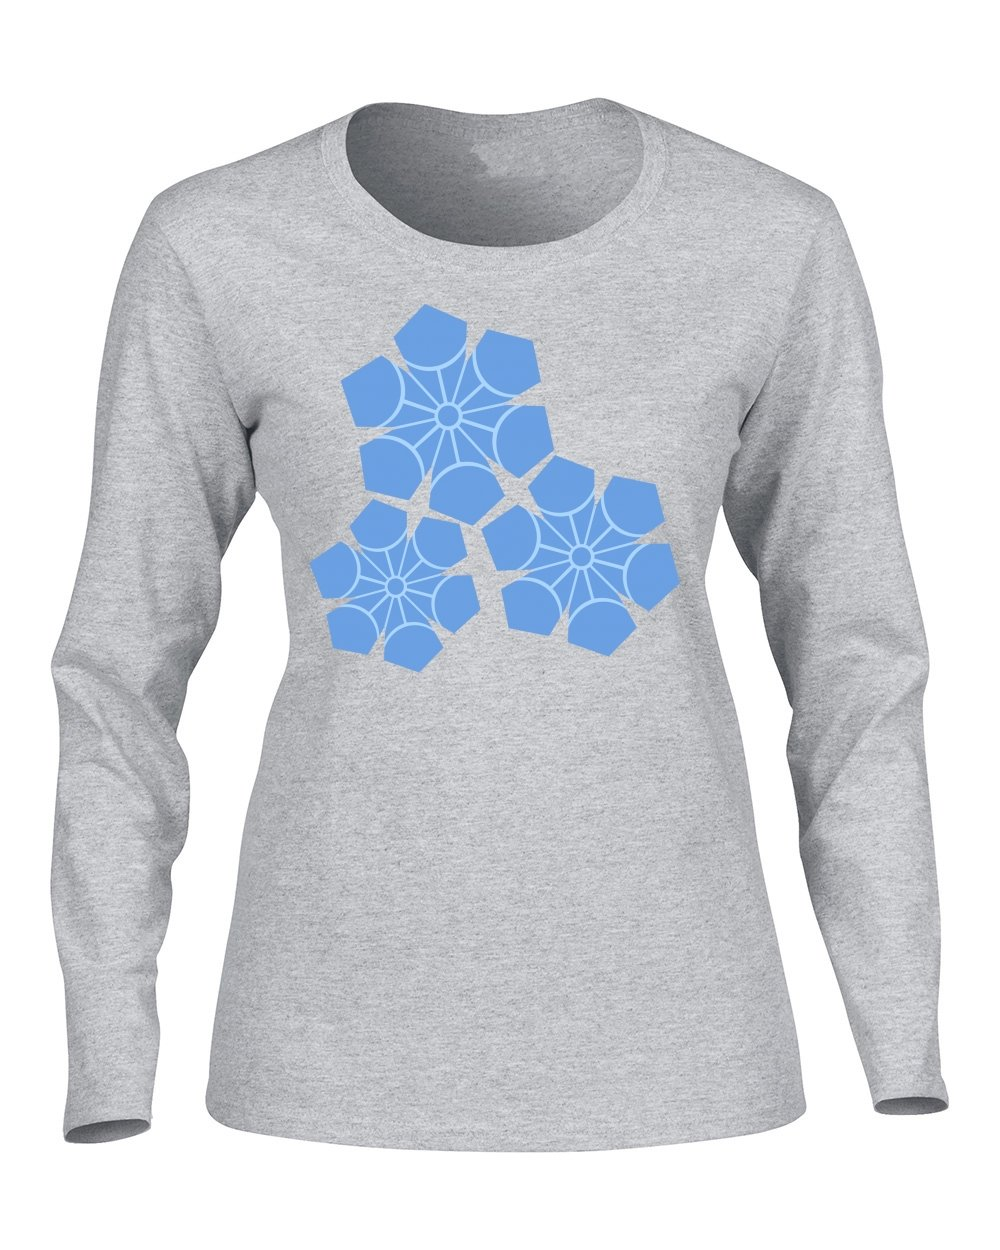 Exull Fashion Hot Style Blue Snow Flake In Winter For Women's Long Sleeve Shirt Gray Medium